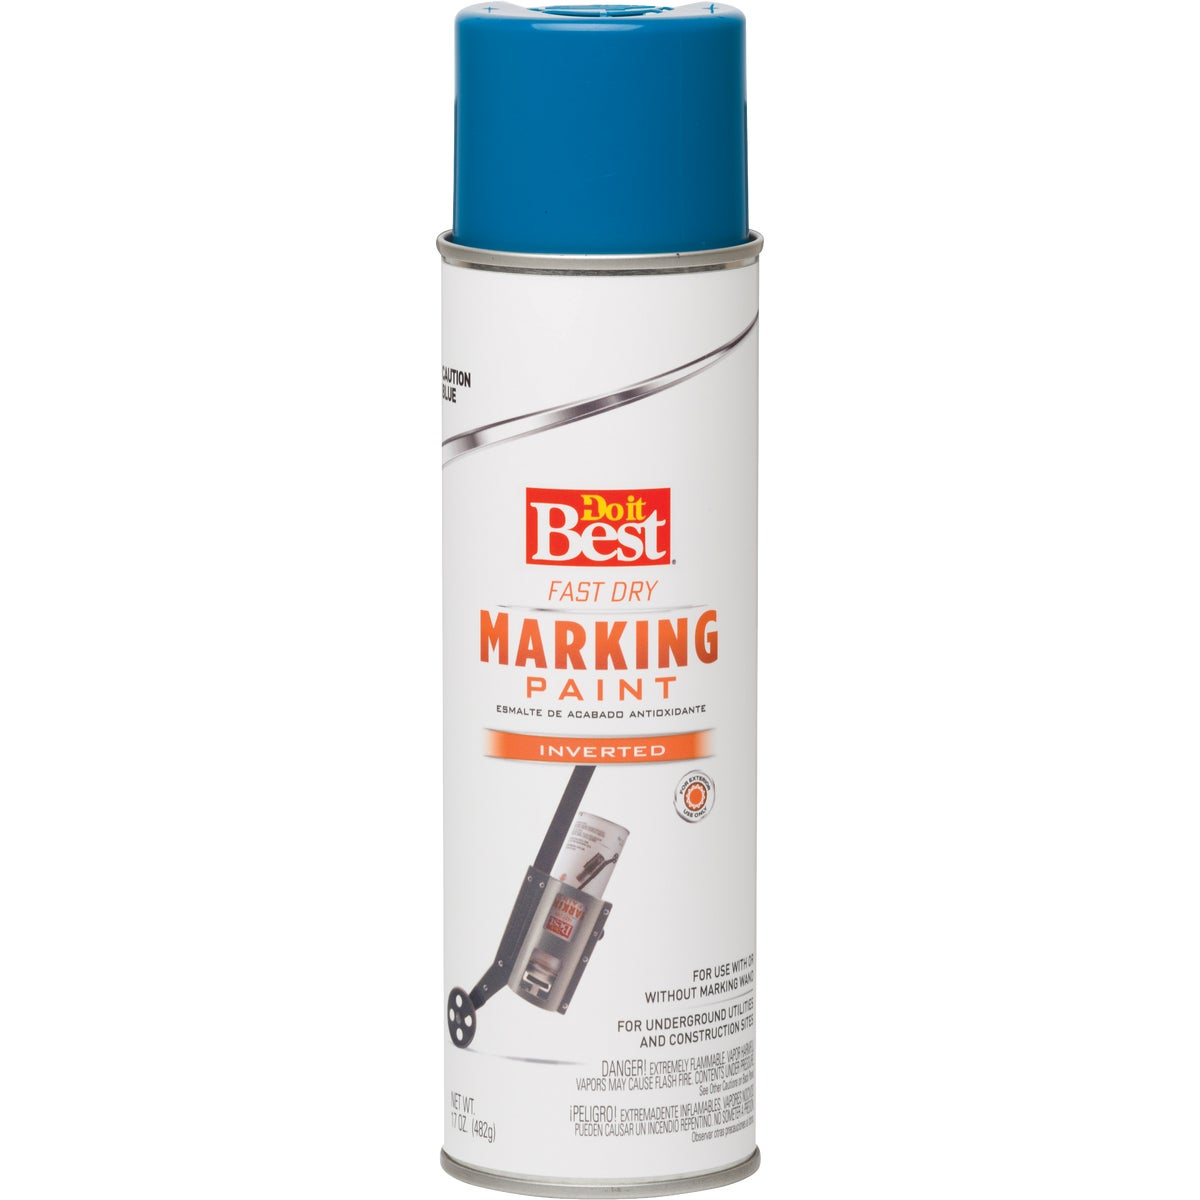 CAUT BLUE MARKING PAINT - 4004 by Rustoleum